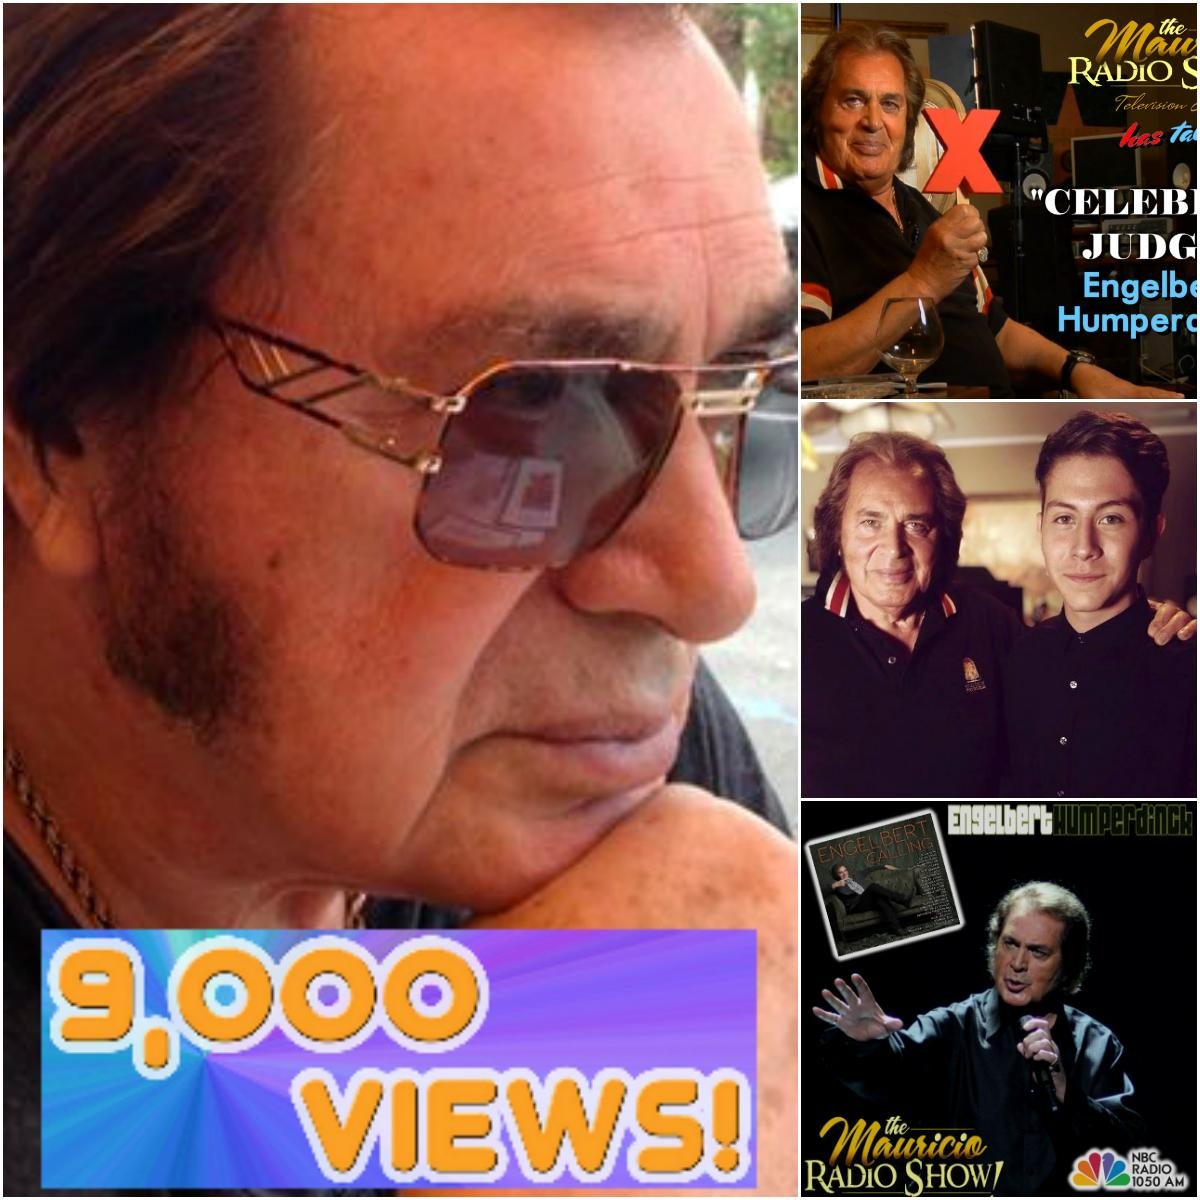 AMAZING! My Interview with @ehumperdinck reached 9.000 VIEWS and it's growing! https://t.co/Pkb97ViLgB #AGT @nbcagt http://t.co/9gqi2nVVkp